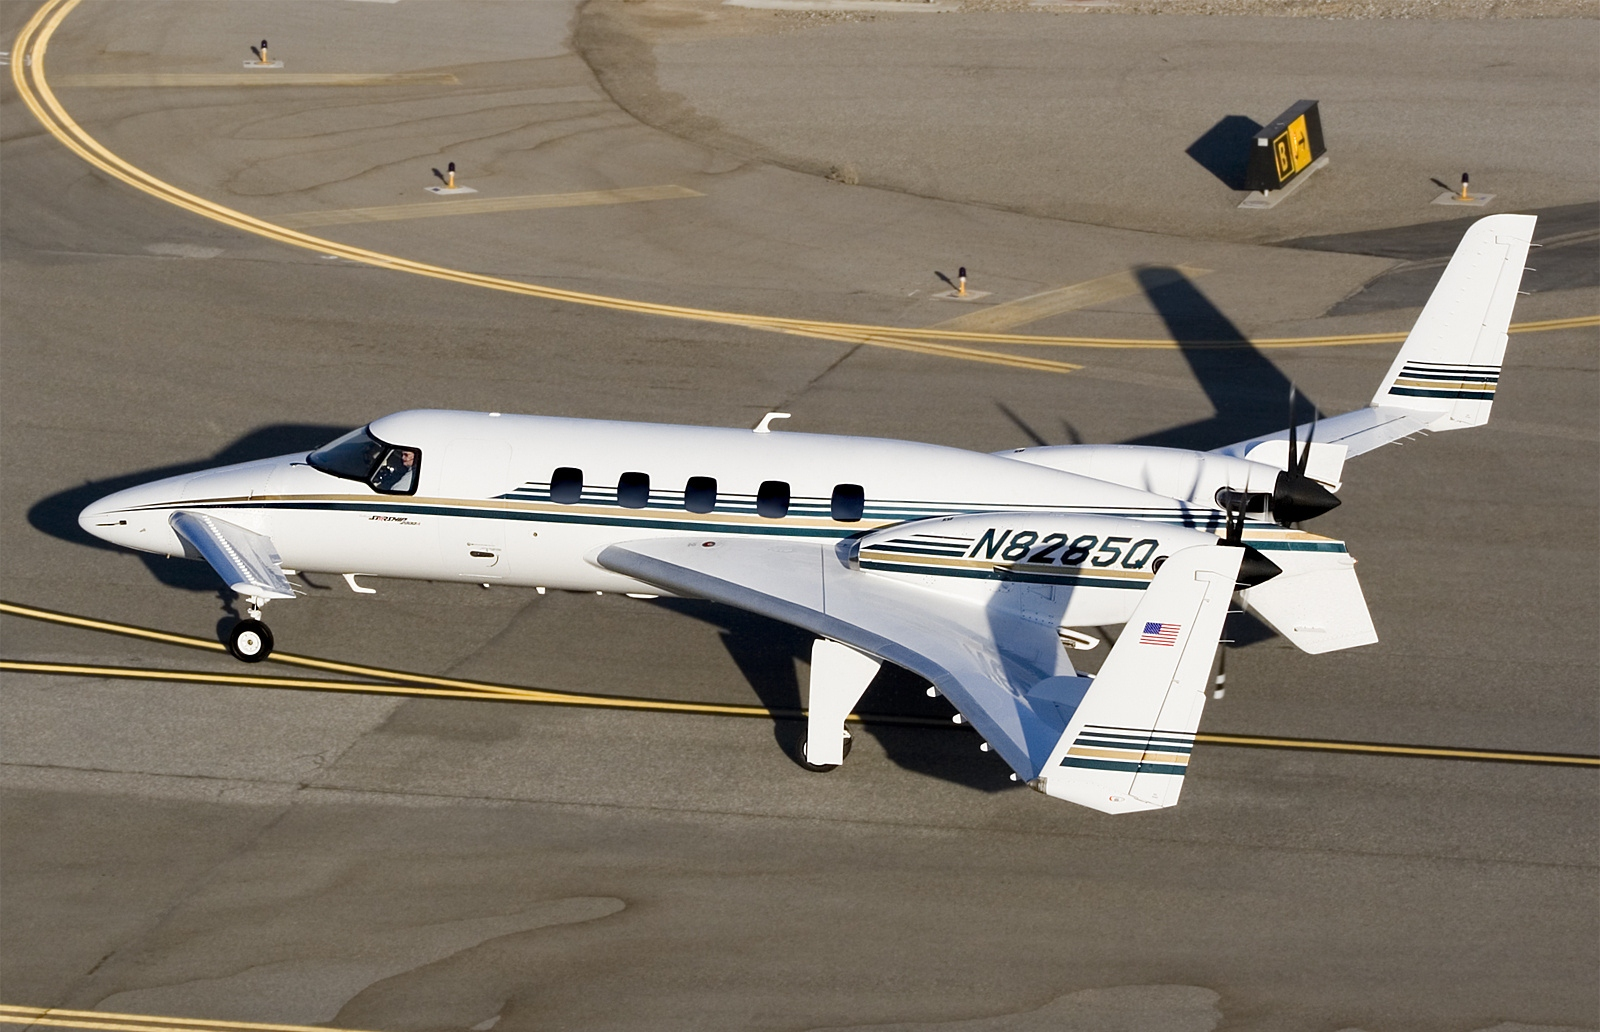 Beech 2000 Starship 1 next